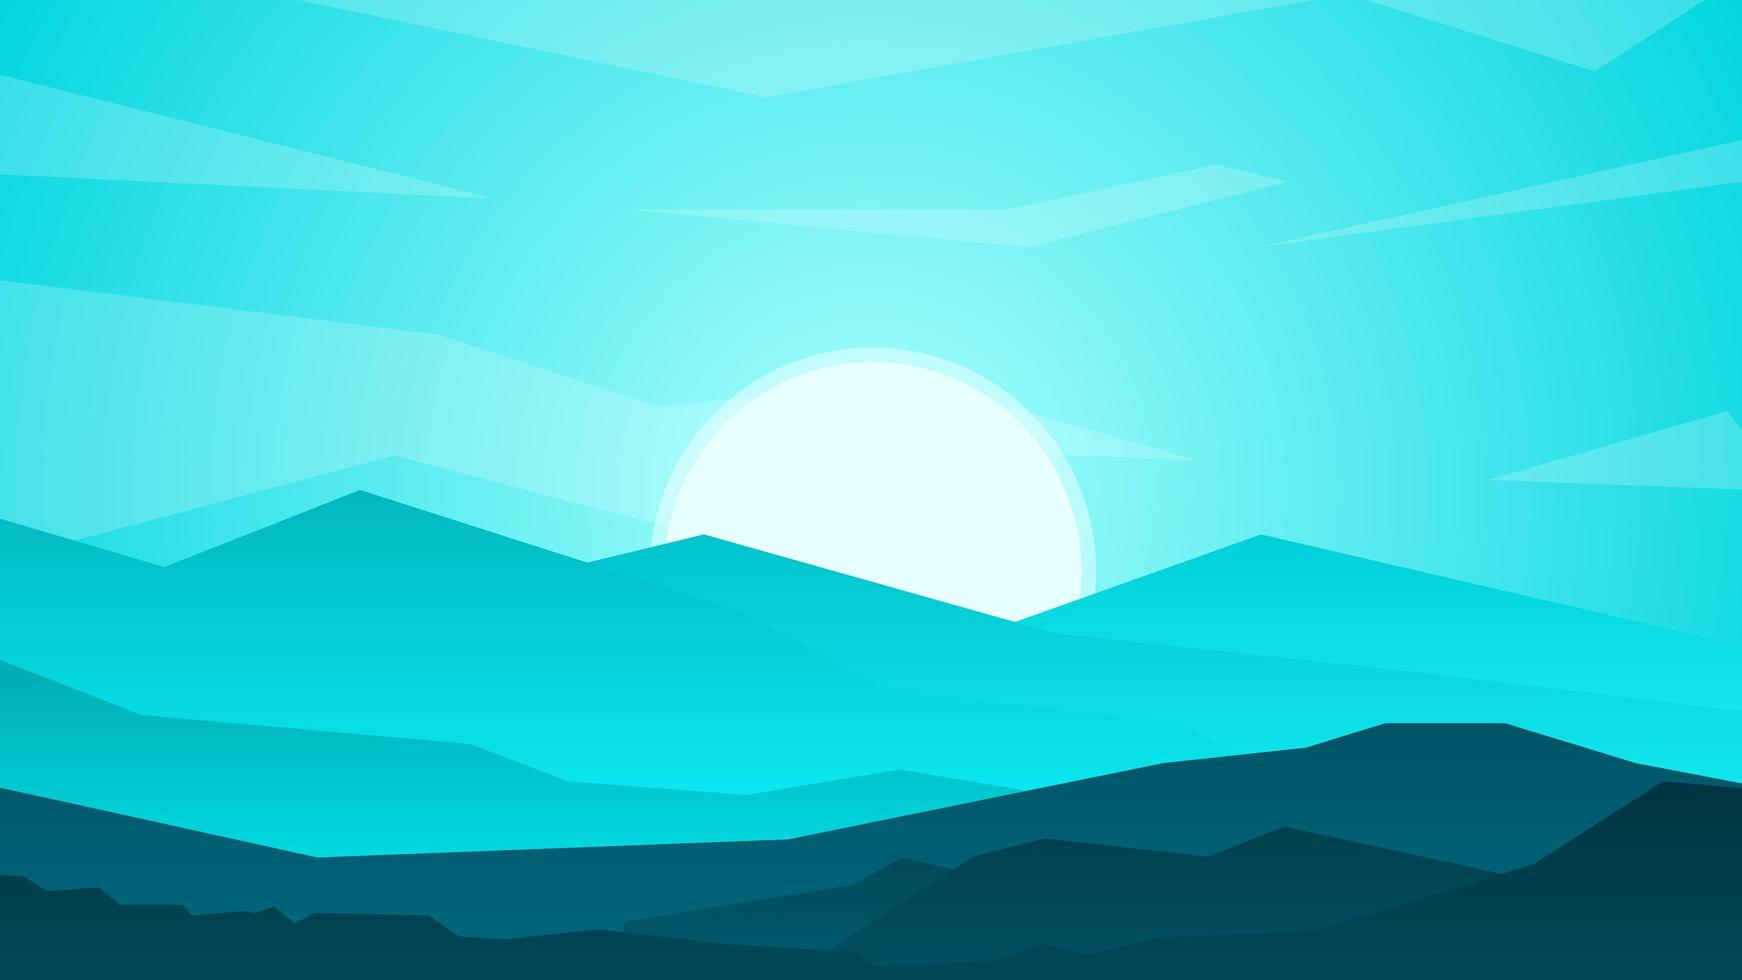 Sundown landscape background with mountains vector